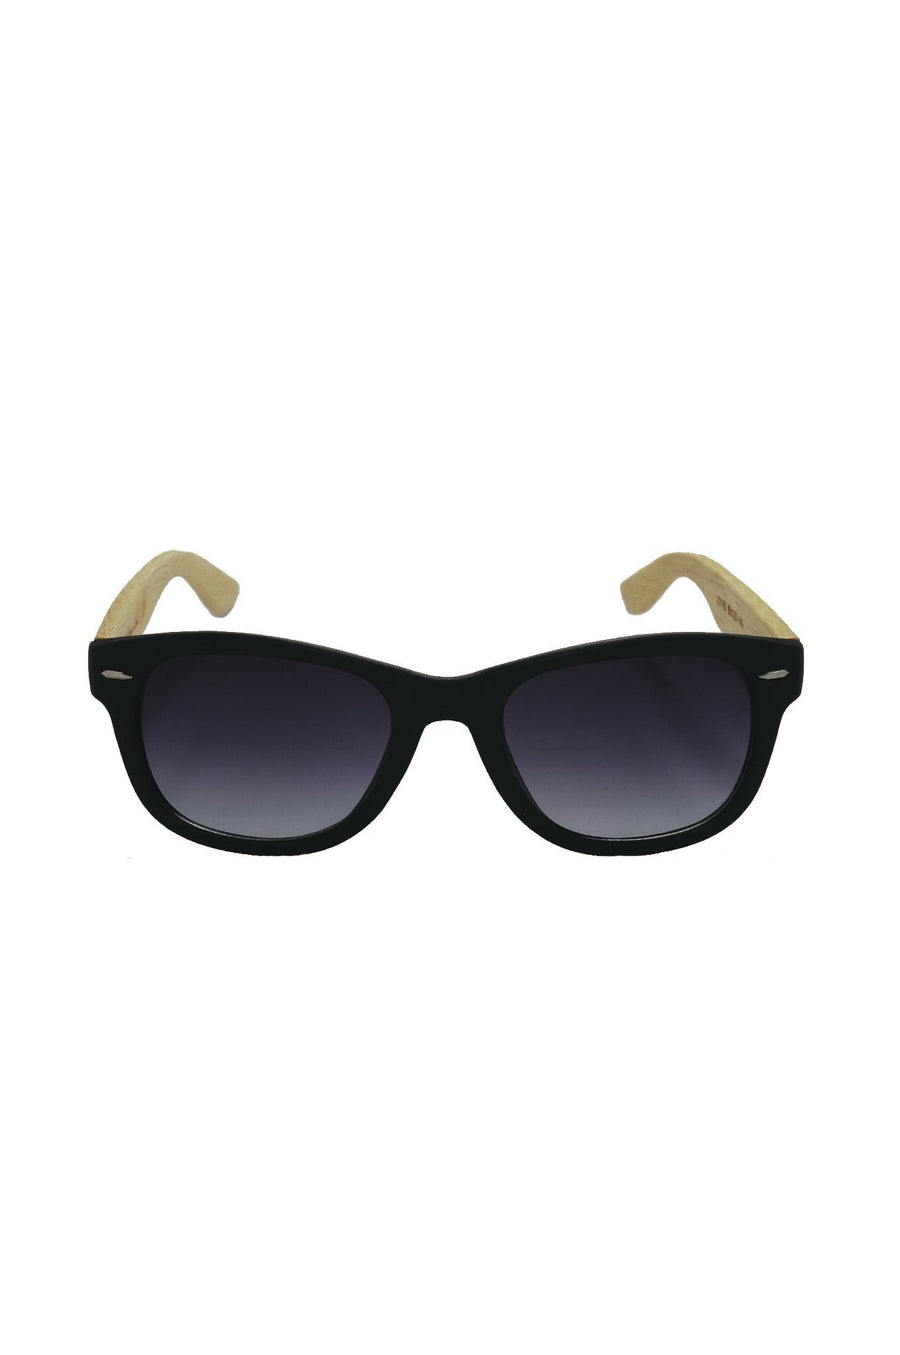 Sunglasses - TRENTO Black Eco Sunglasses By Antonio Verde